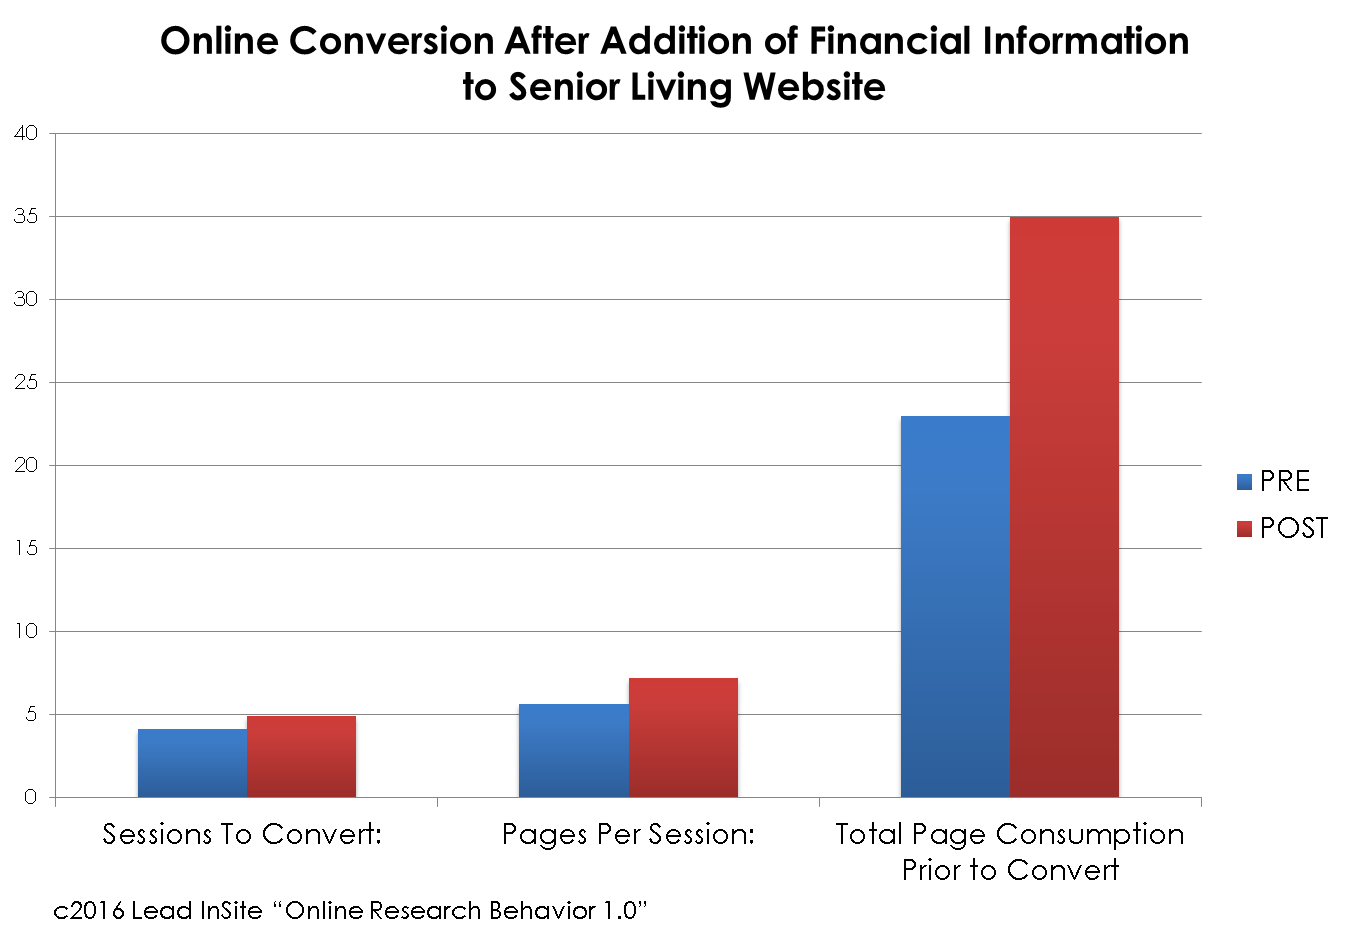 Chart - online conversion / lead capture of senior living web visitors after financial information added